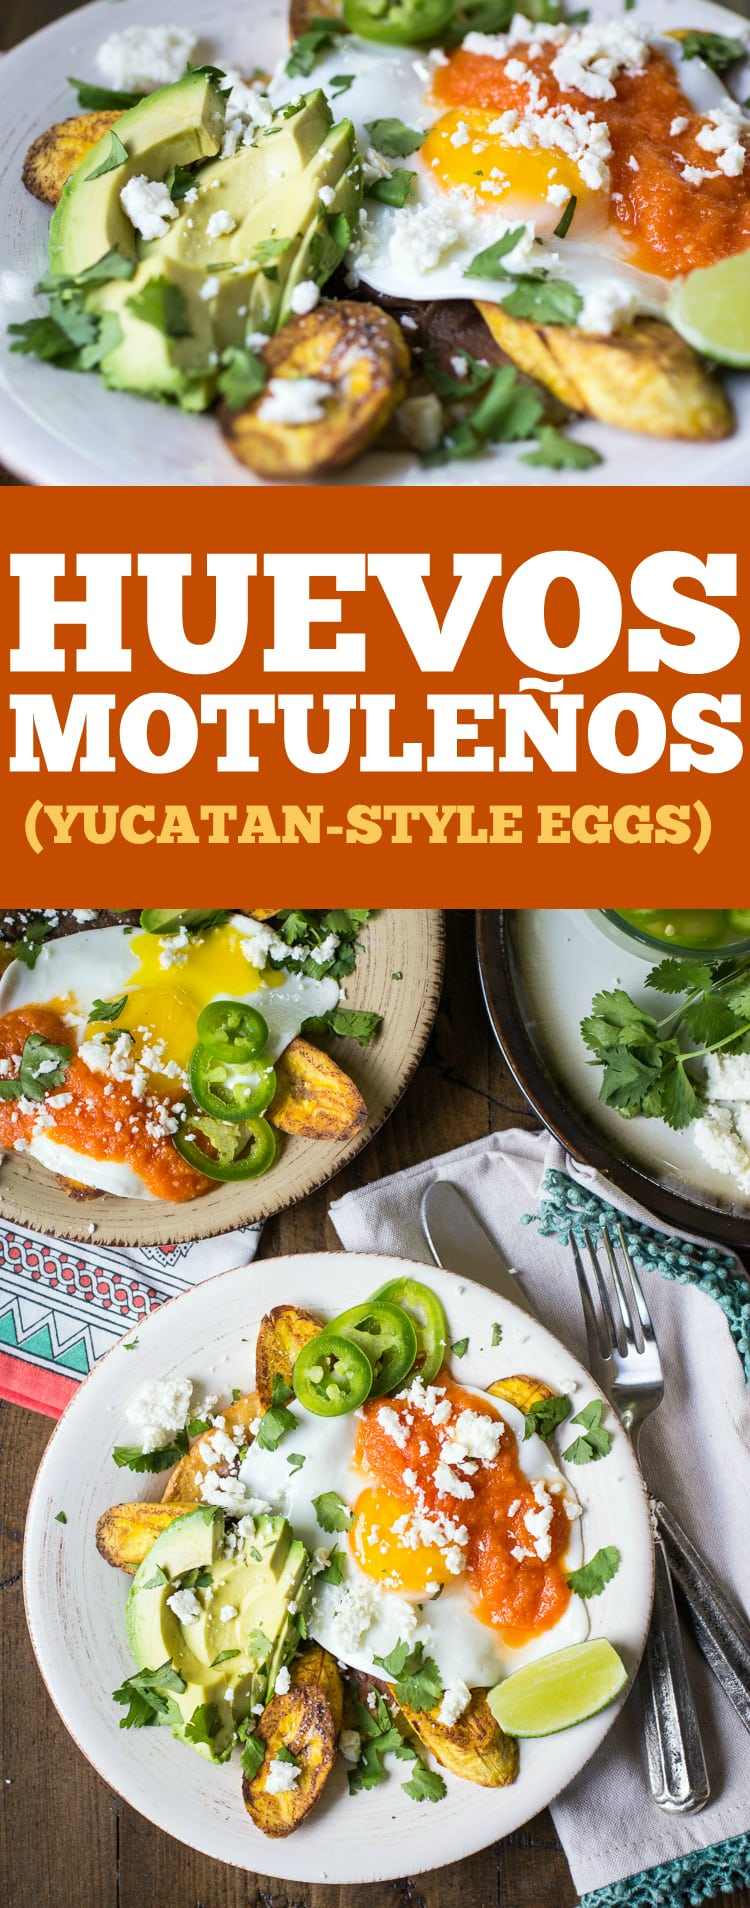 Huevos Motulenos - The Wanderlust Kitchen